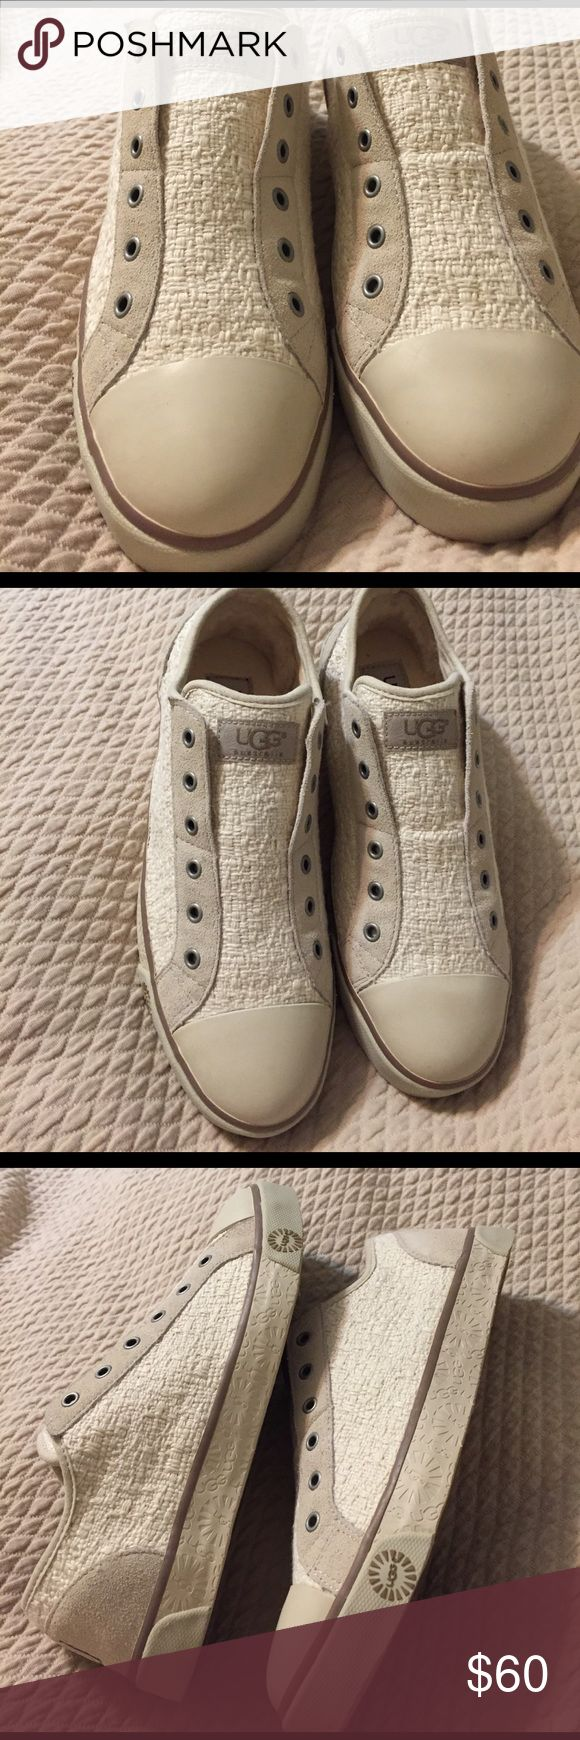 New W/O Tags Ugg Sneakers Brand new never been worn Ugg sneakers. Shearling lined with cotton woven body and suede trim. UGG Shoes Sneakers